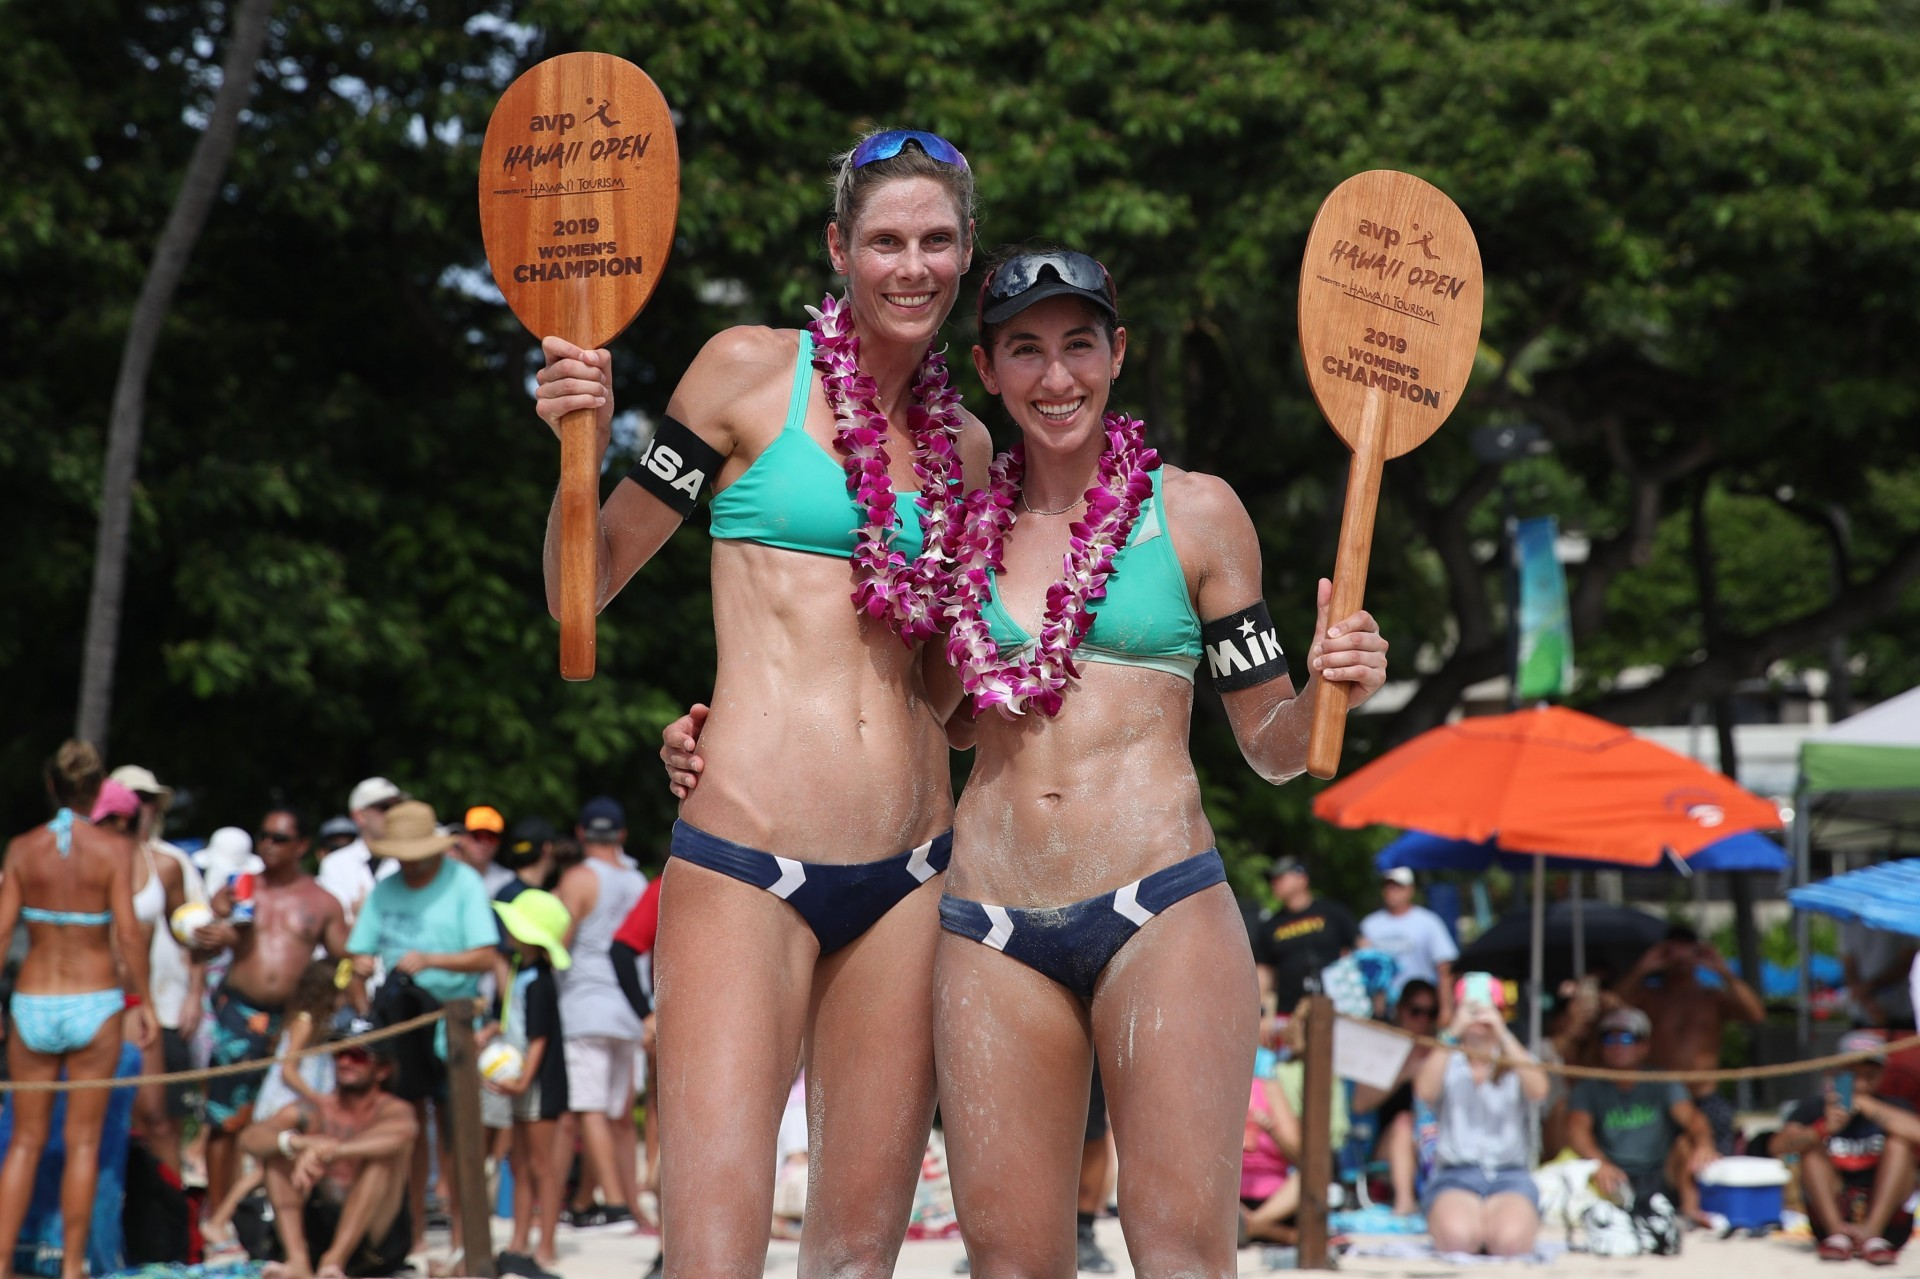 Sarah and Melissa won their fifth and last gold medal of 2019 in Hawaii (Photocredit: AVP)